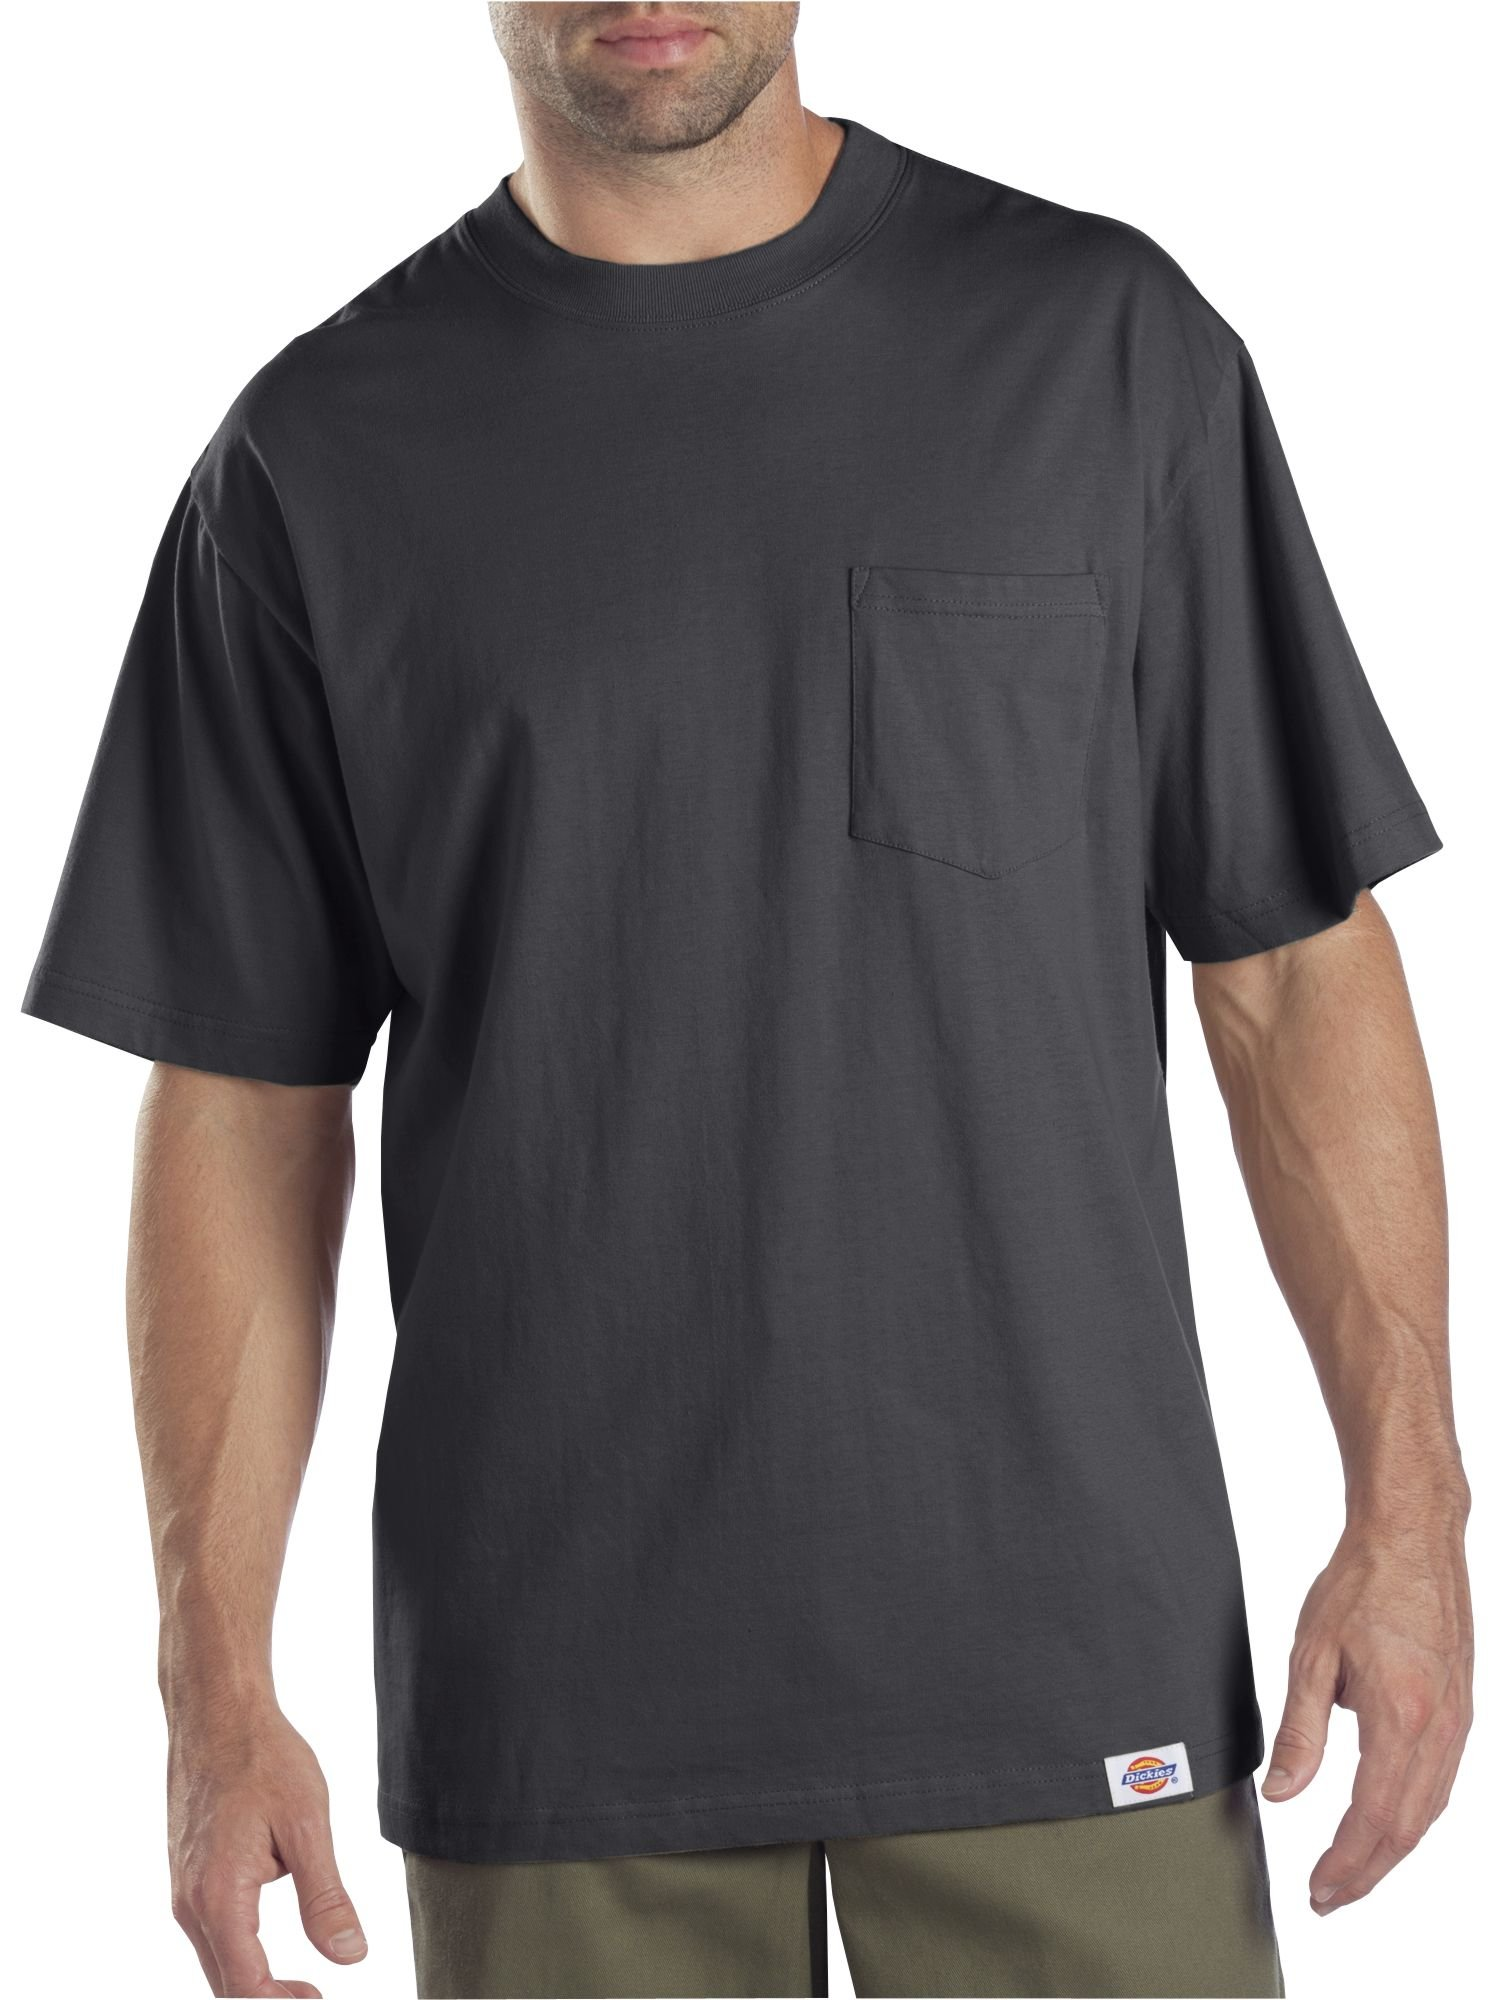 Dickies Men's Short Sleeve Pocket T-Shirt 2-Pack, Charcoal, Large